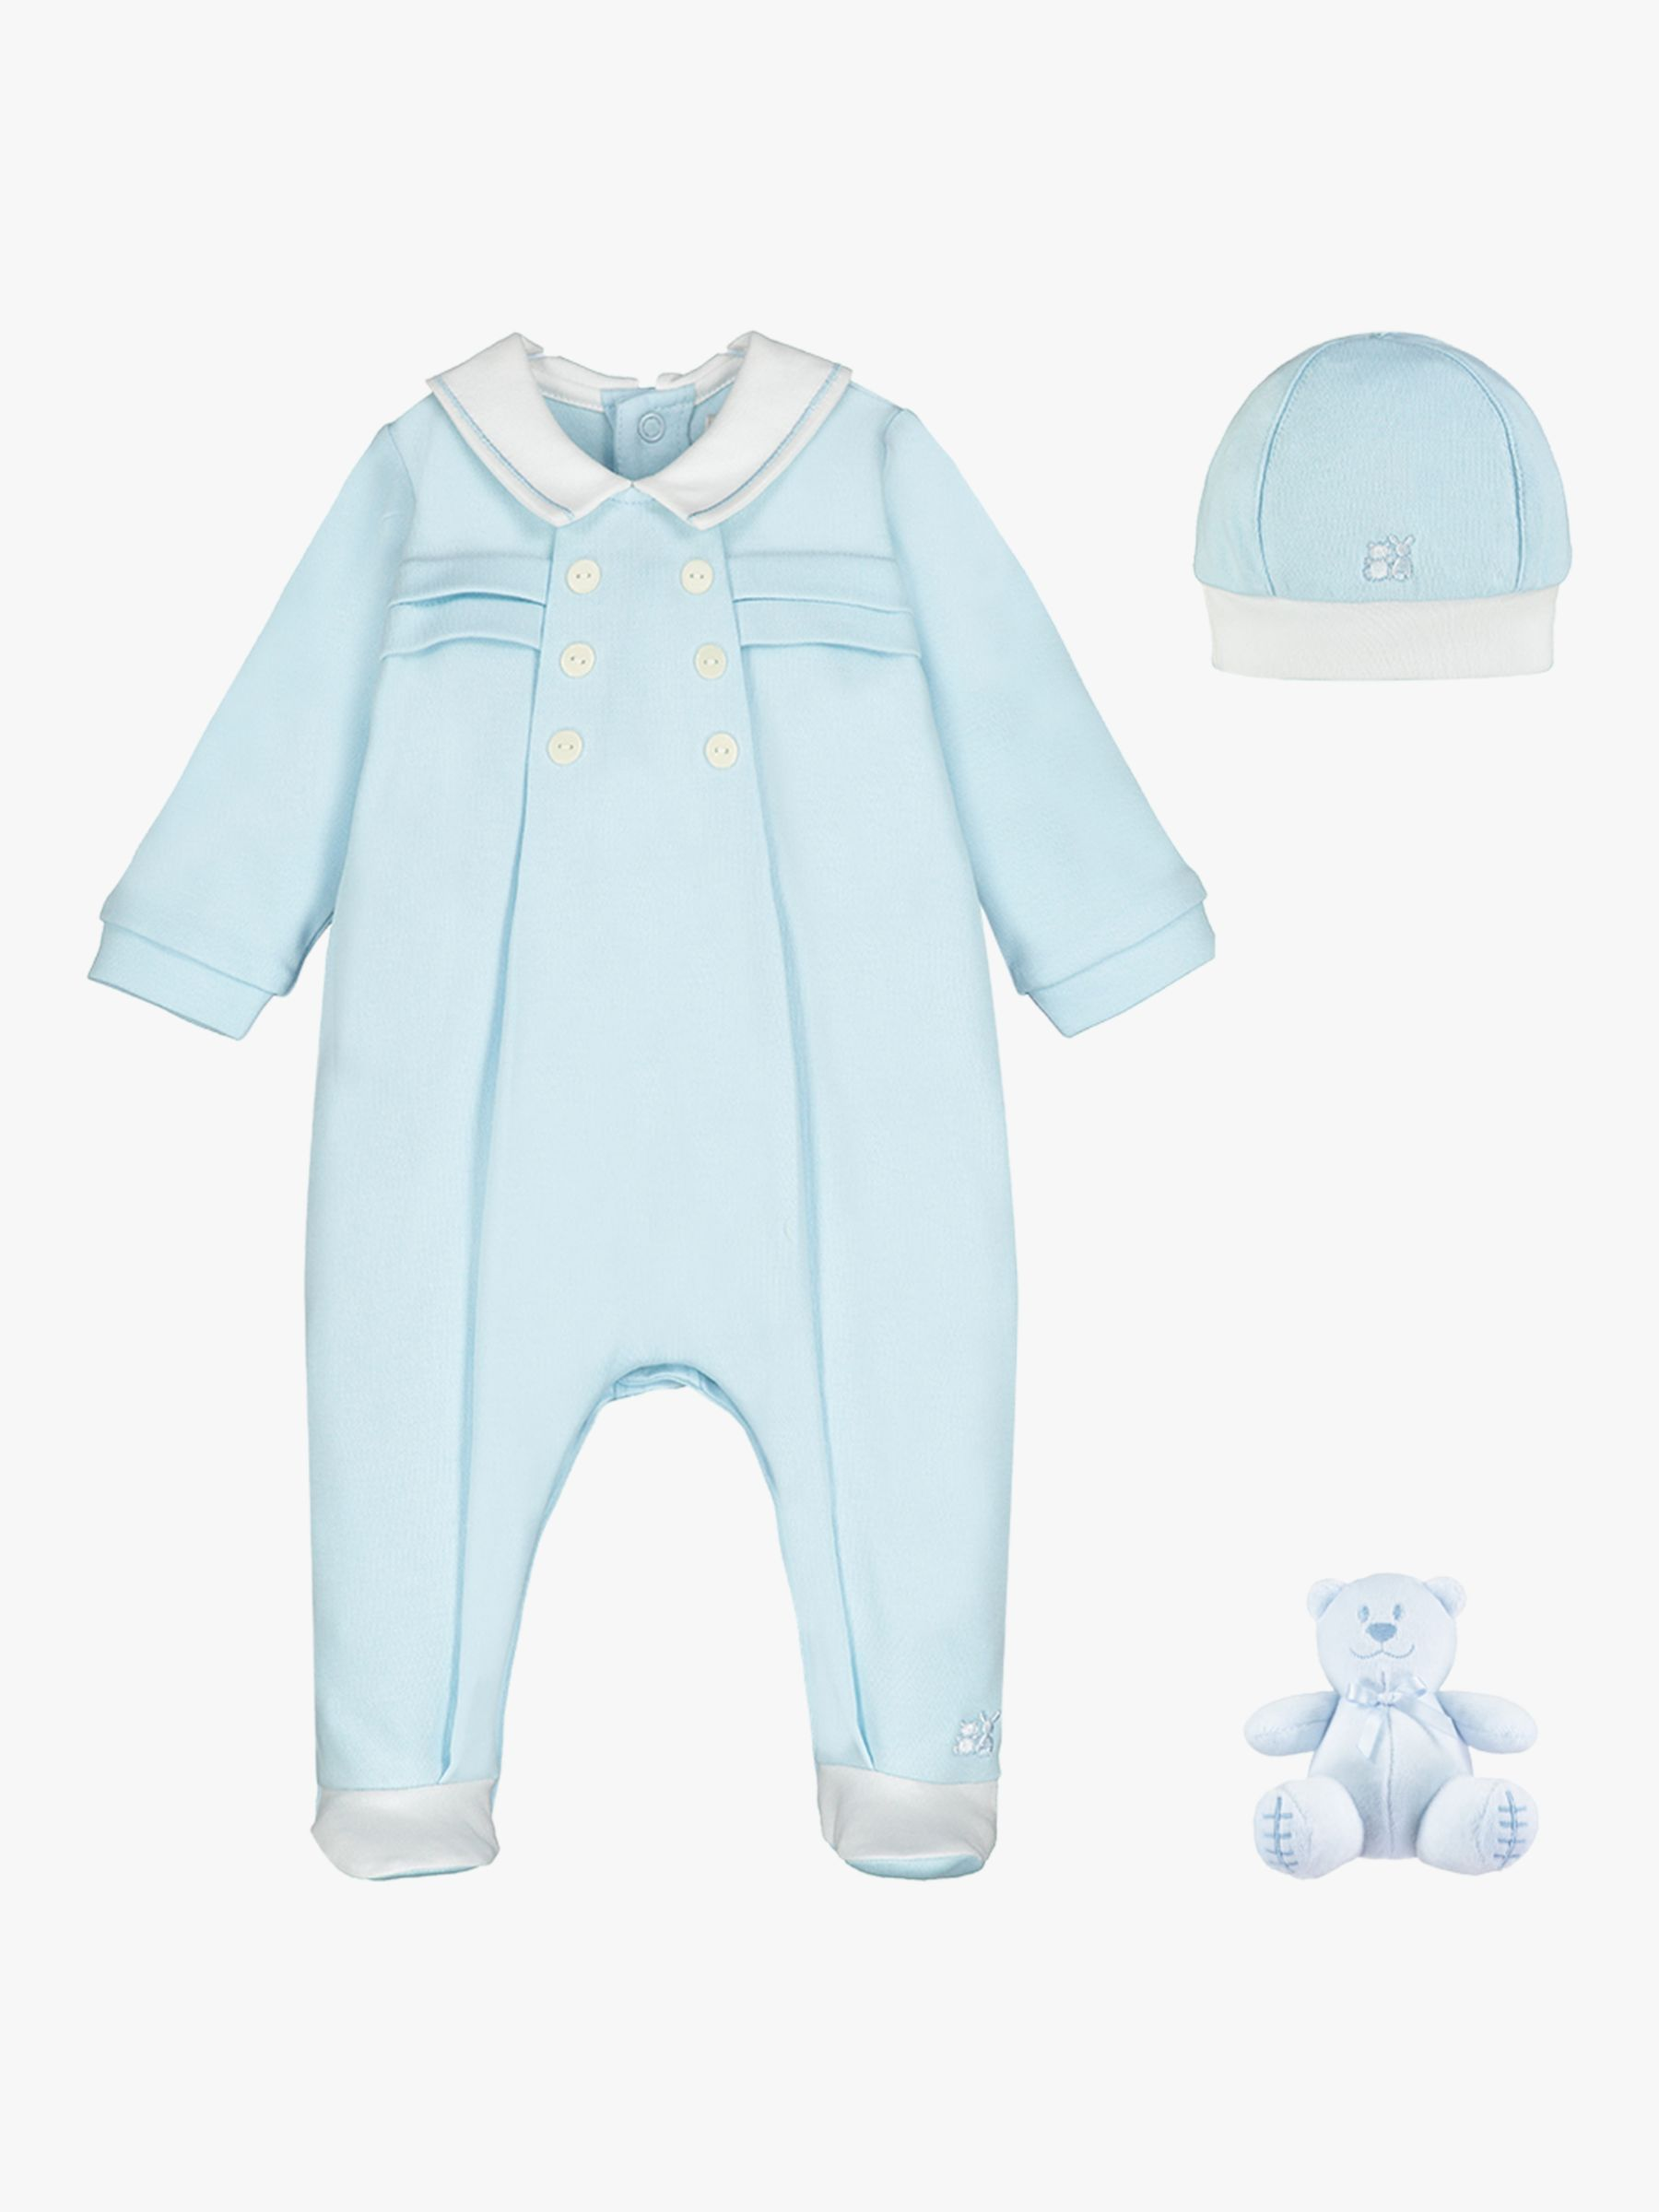 Emile et Rose Emile et Rose Seb Pleat Sleepsuit, Hat and Teddy Bear Set, Pale Blue/White